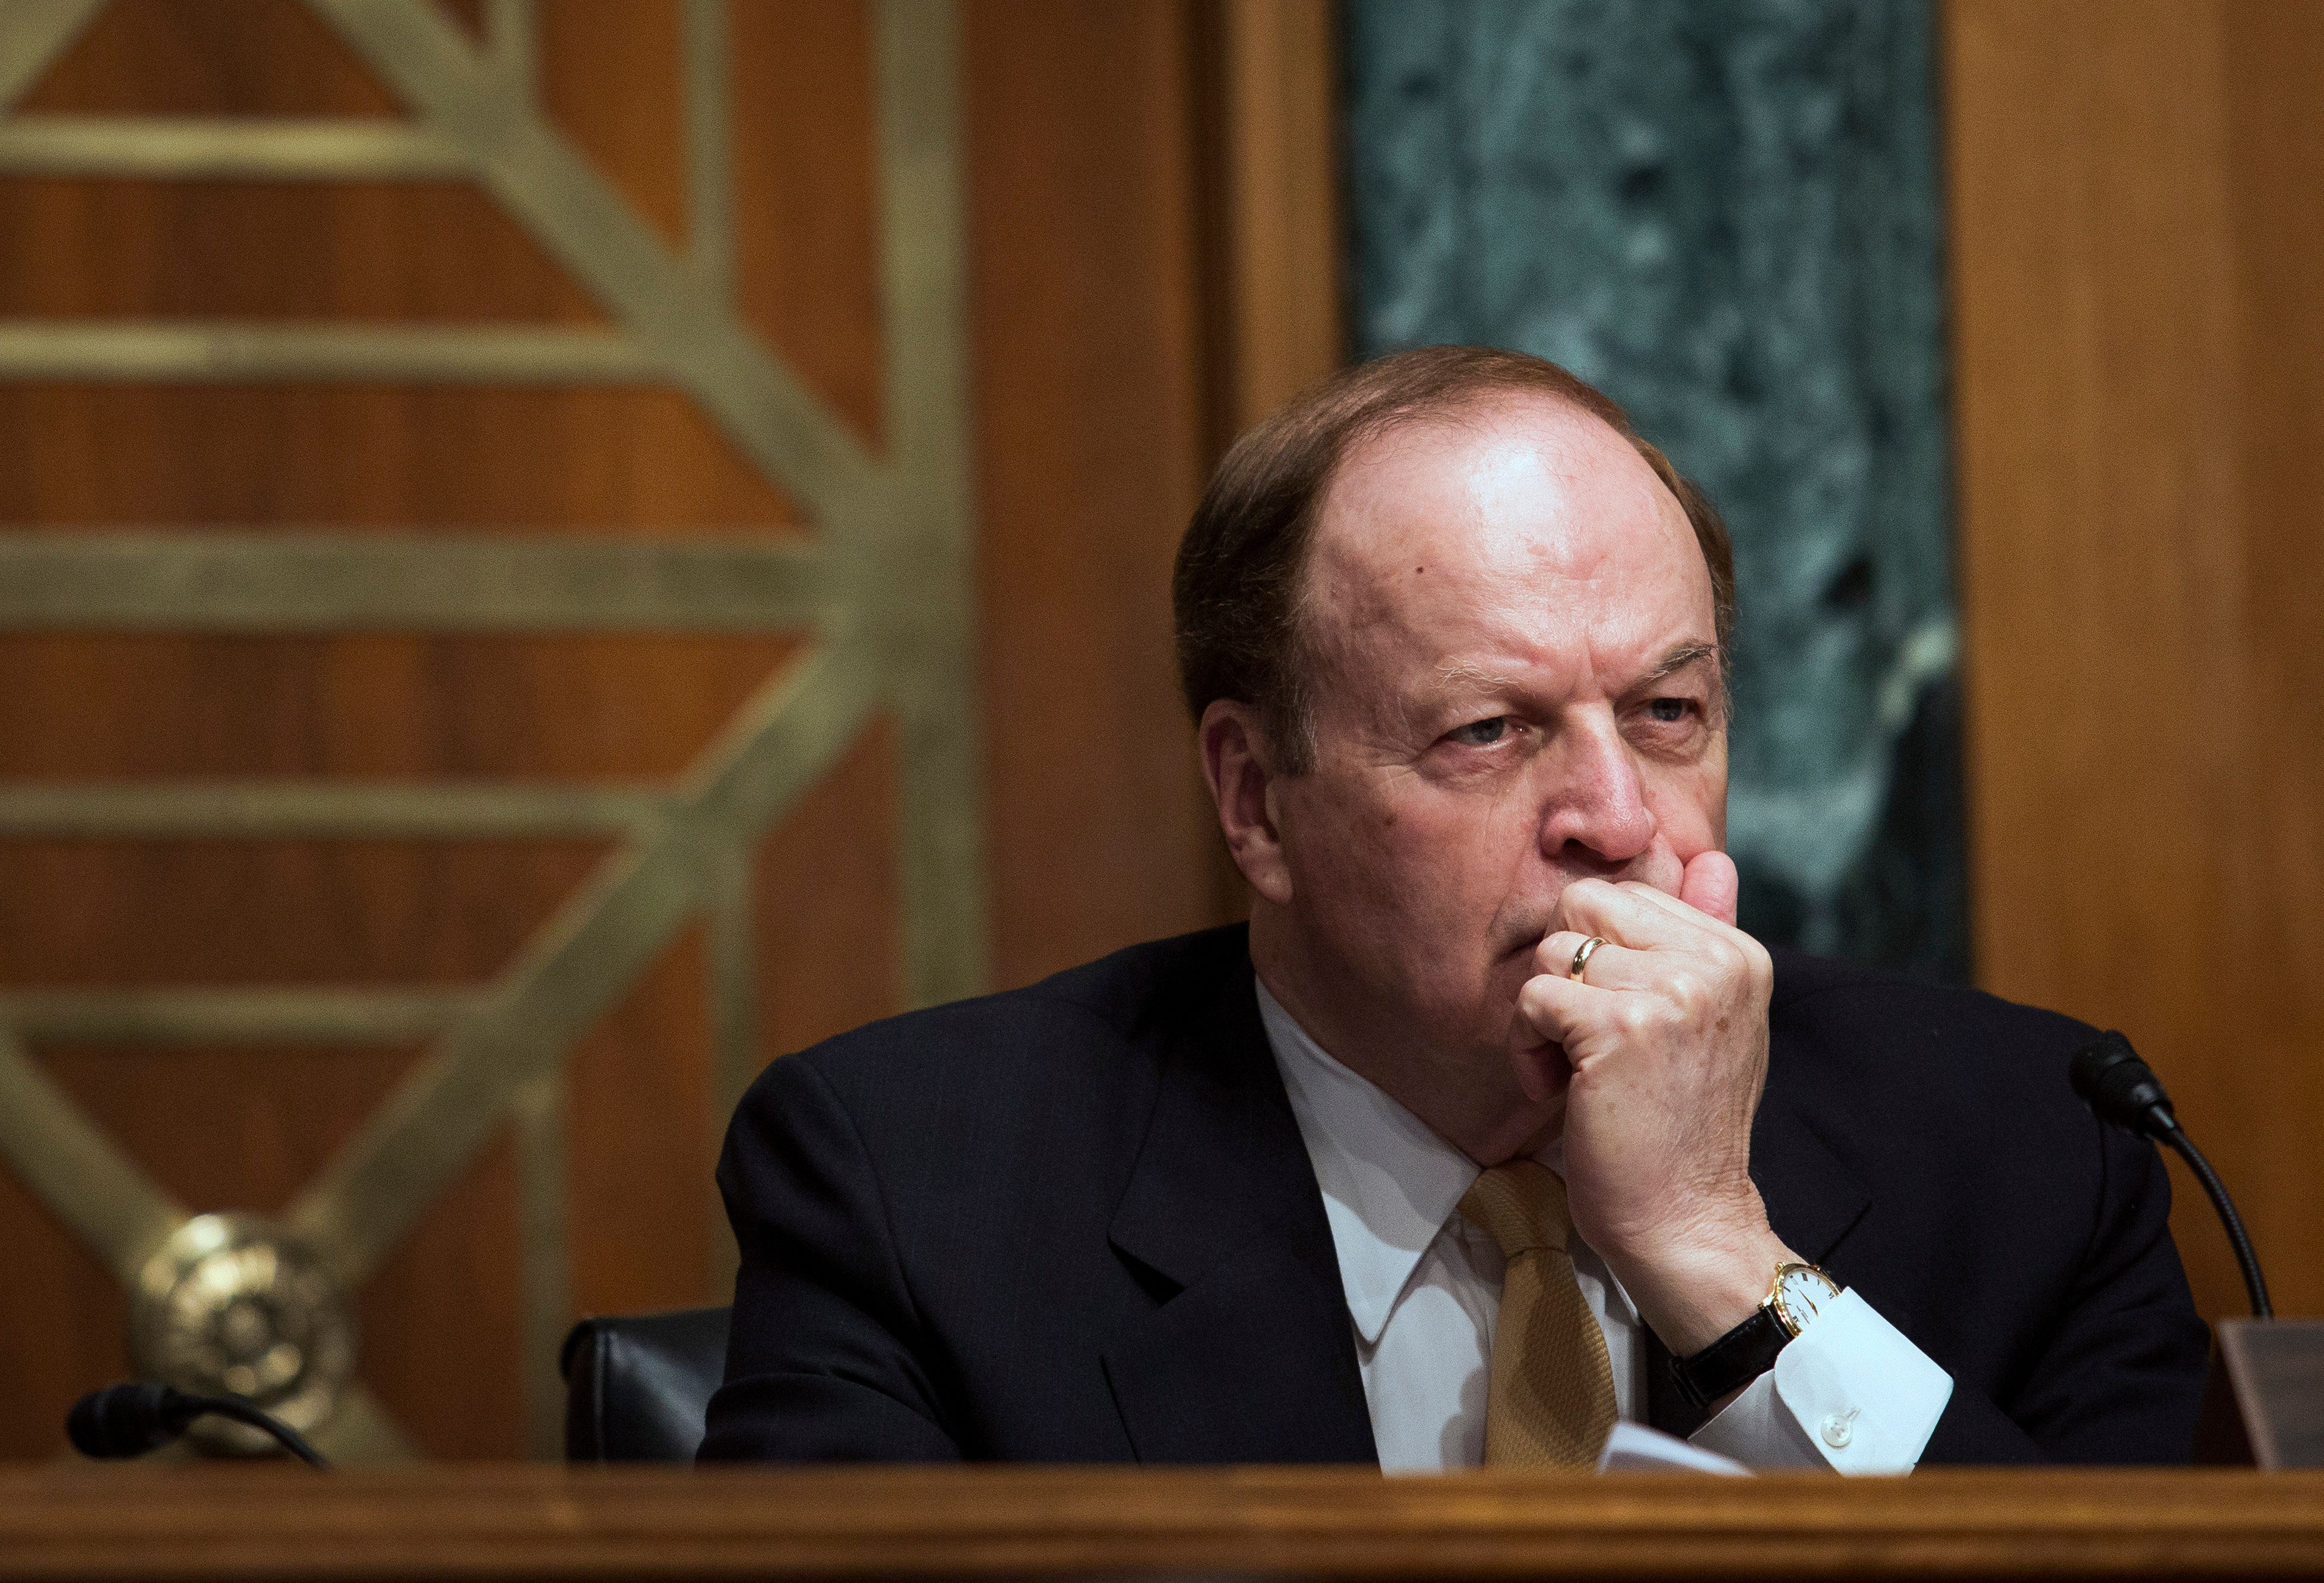 Senator Richard Shelby, a Republican from Alabama and chairman of the Senate Banking Committee, listens to the semiannual report on the economy by Federal Reserve Chair Janet Yellen in Washington, D.C., U.S., on Thursday, July 16, 2015. Yellen said the Federal Reserve is 'highly focused' on the risks of raising interest rates too early. Photographer: Drew Angerer/Bloomberg via Getty Images